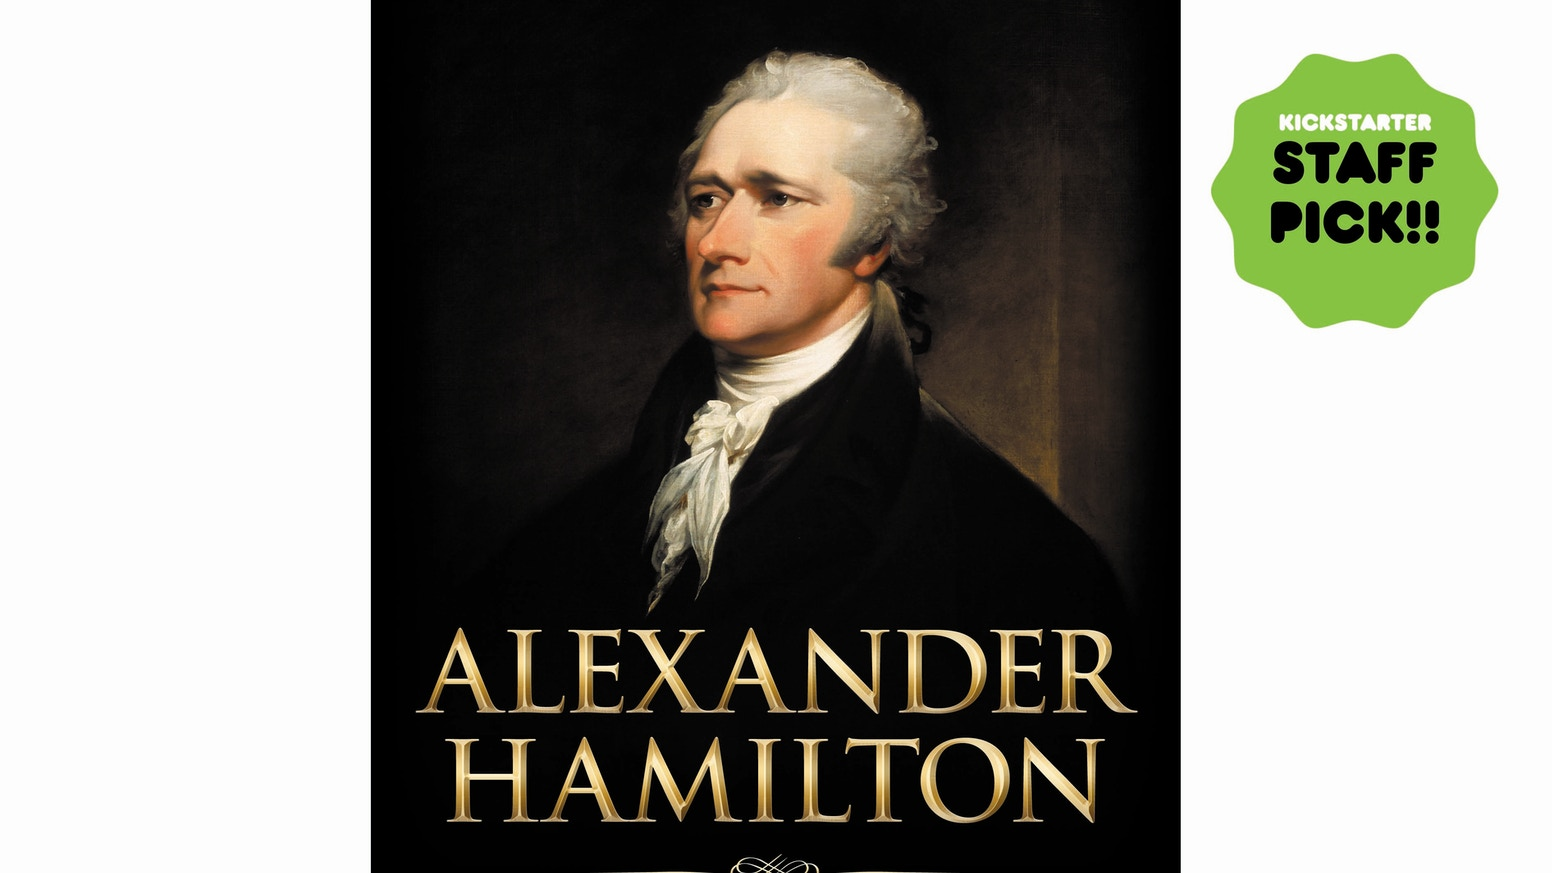 A fresh and fascinating account of Alexander Hamilton's origins, youth, and indispensable services during the American Revolution.